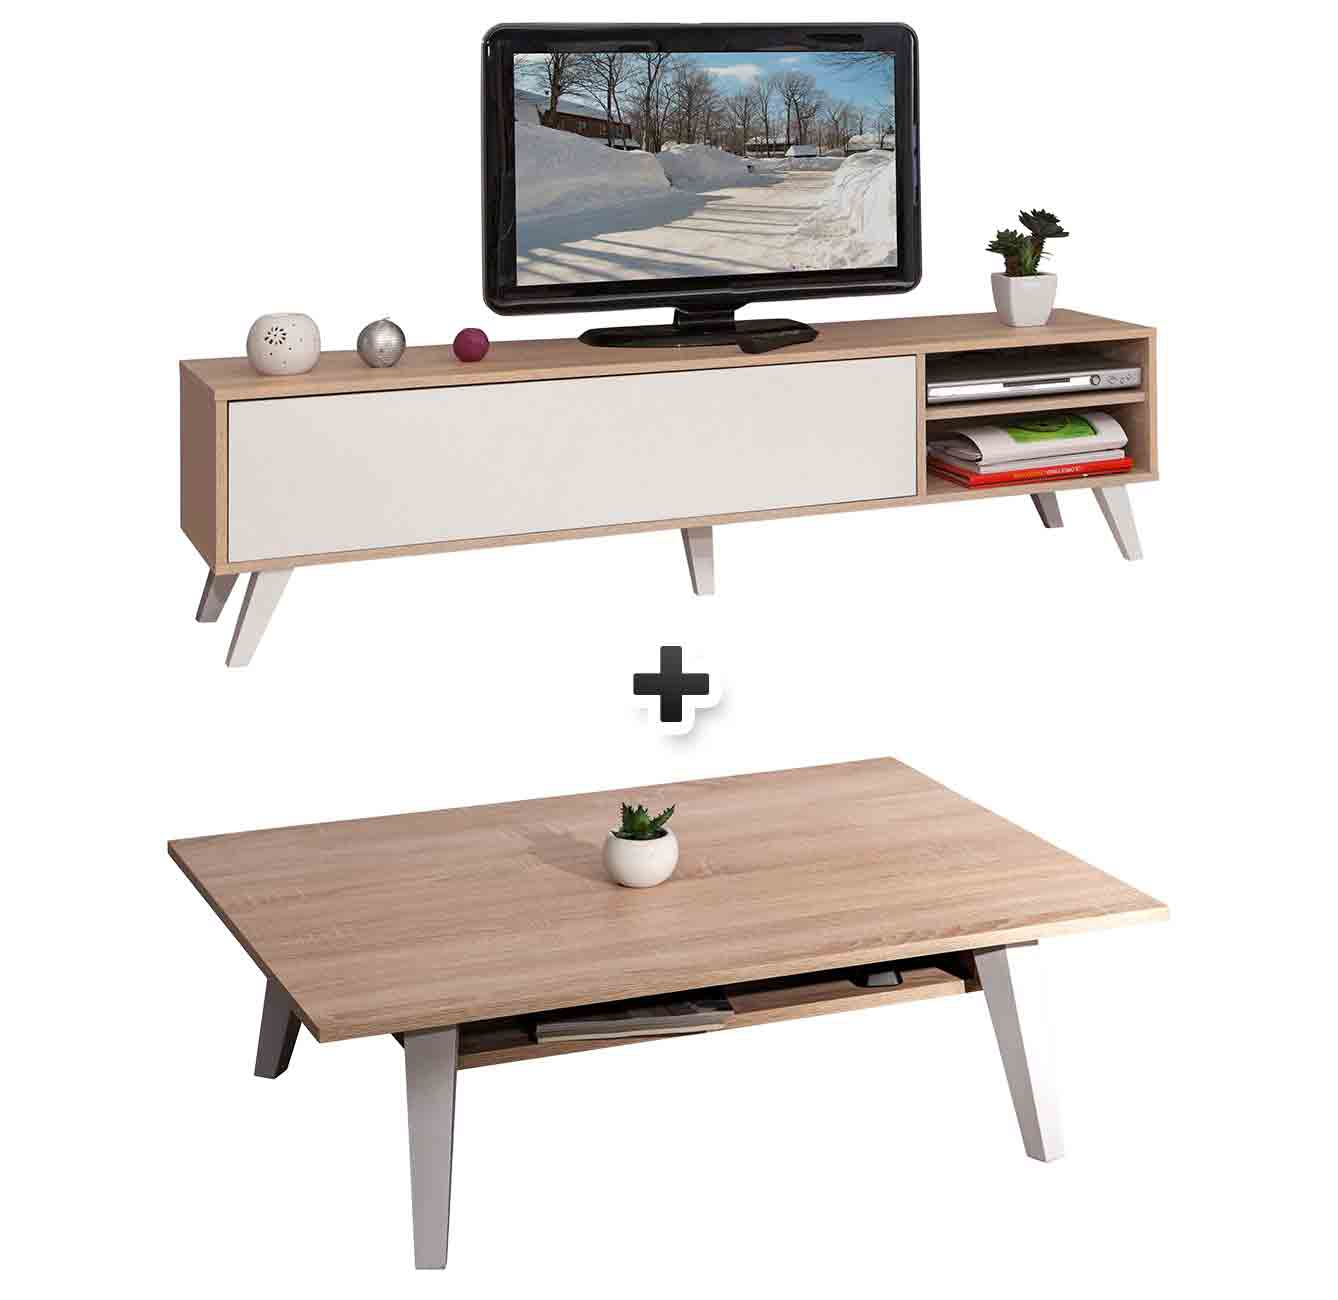 Meuble tv scandinave cosmos ch ne et blanc meubles tv but for Meuble tv chene et blanc